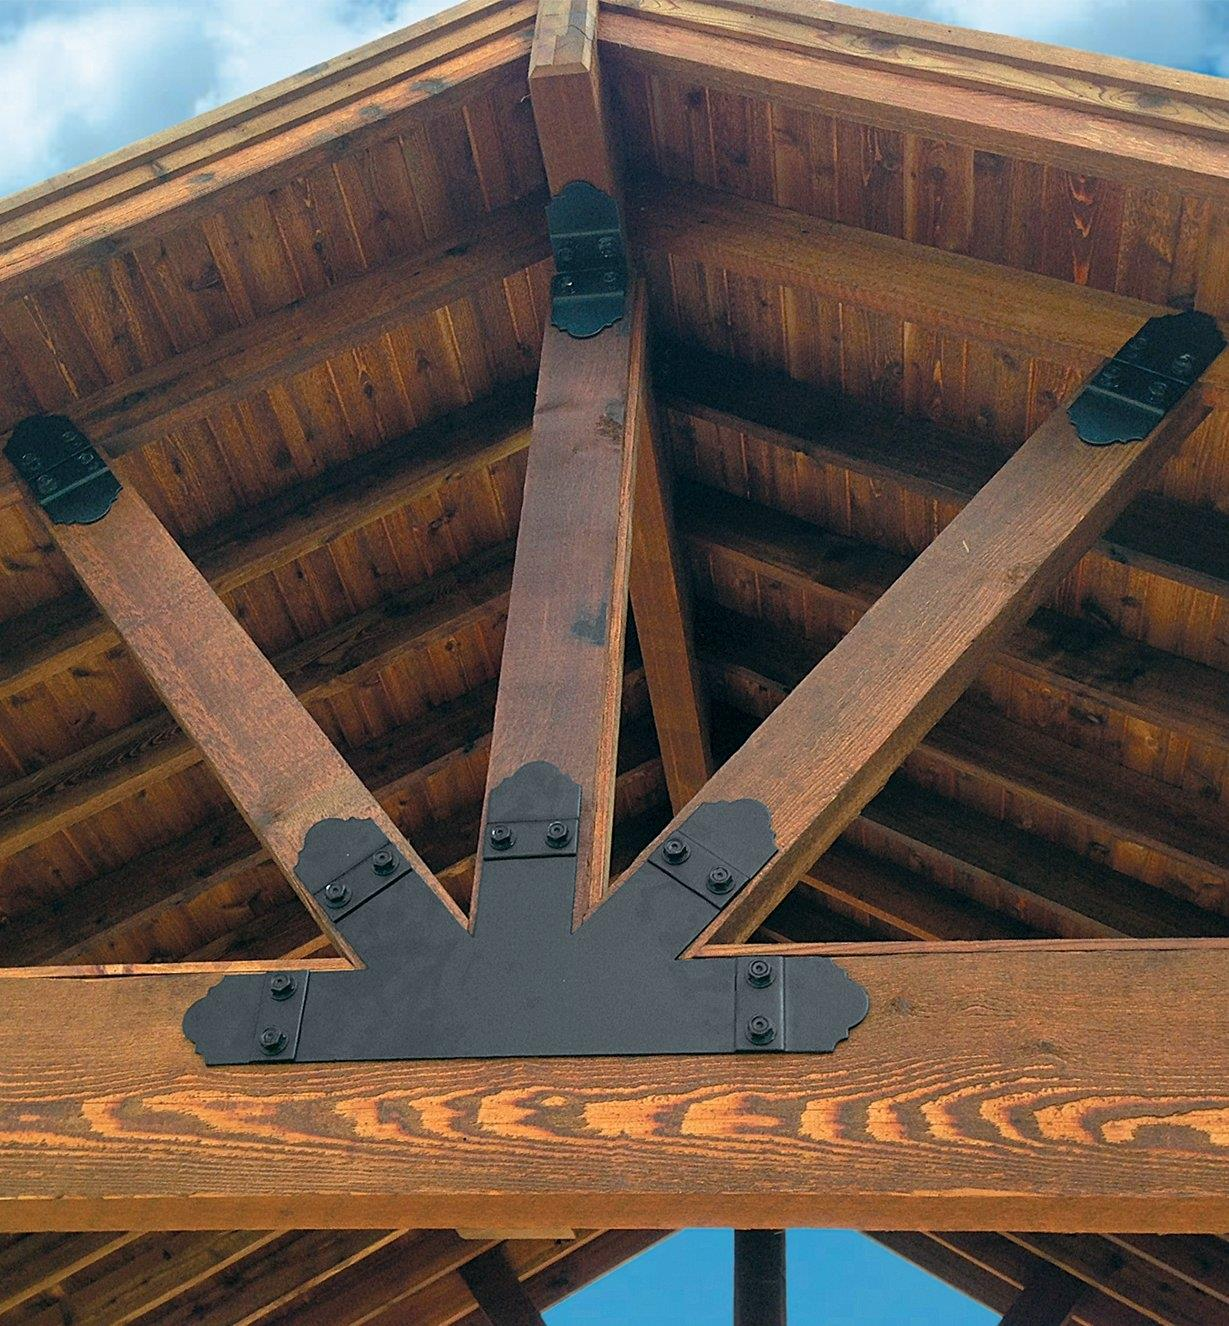 Example of Ozco Truss Ties used on an outdoor structure